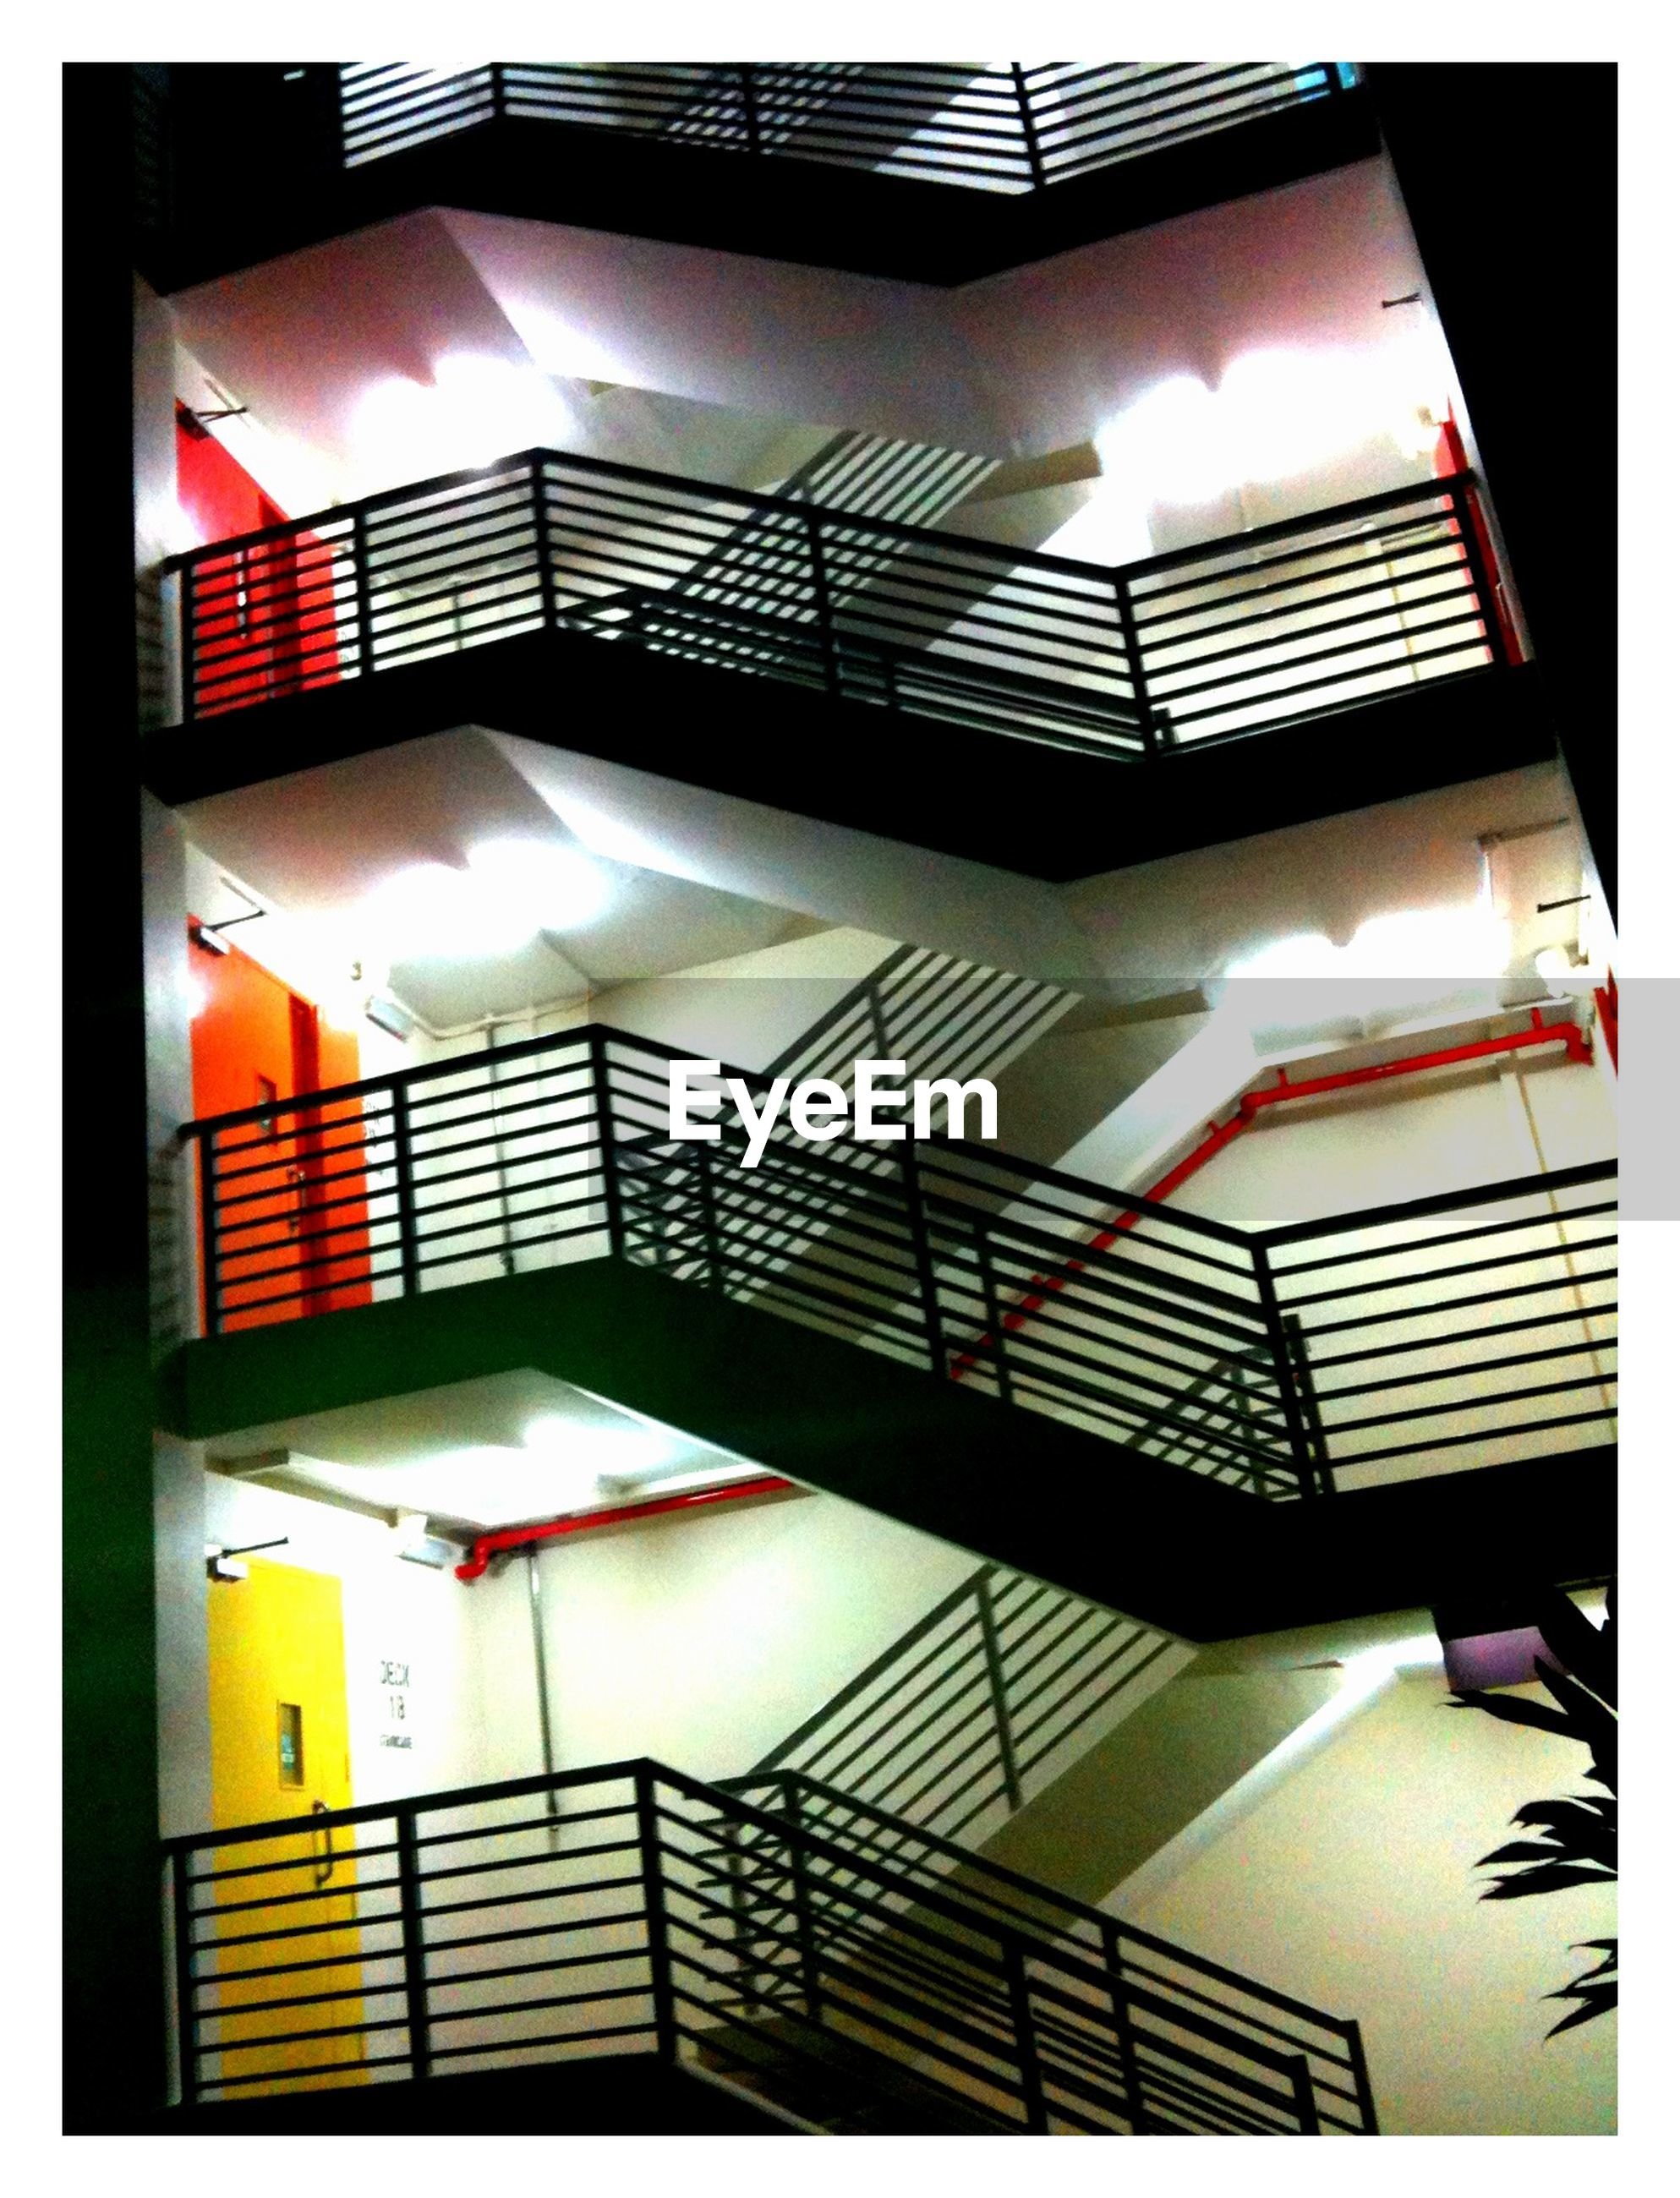 transfer print, auto post production filter, indoors, steps, staircase, railing, steps and staircases, architecture, built structure, sunlight, stairs, low angle view, high angle view, no people, escalator, absence, day, building, reflection, building exterior